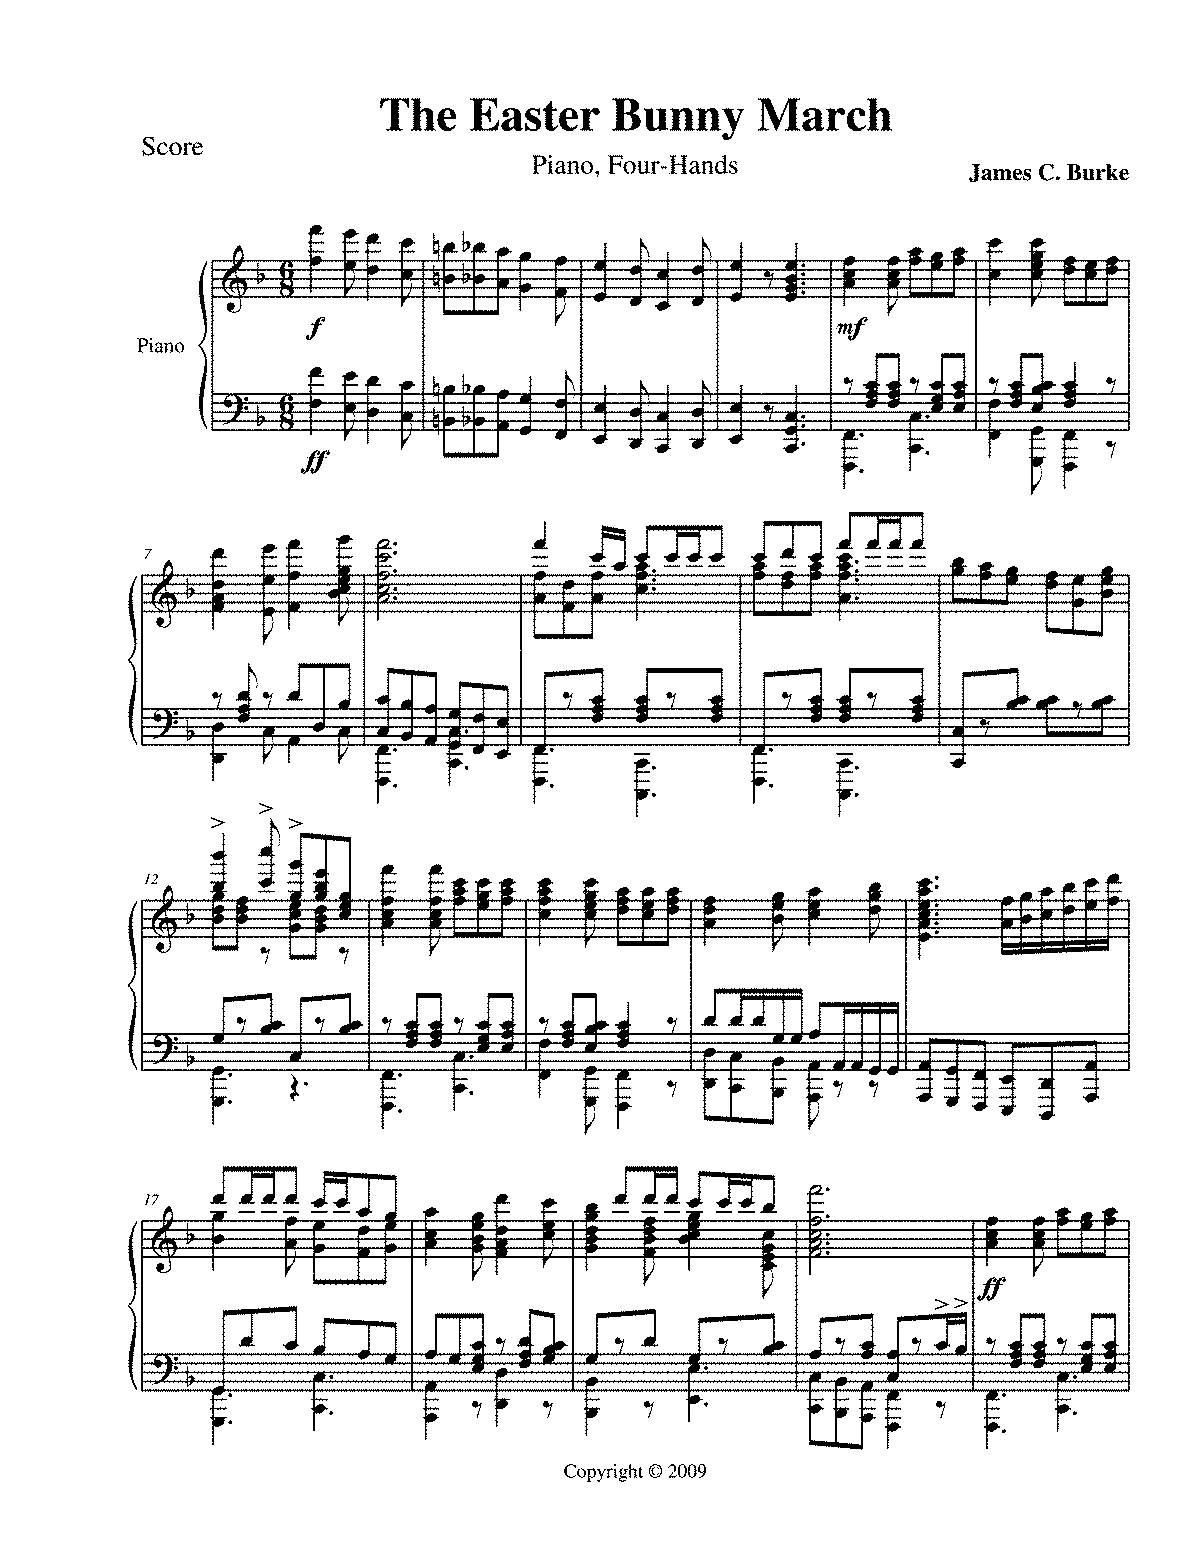 PMLP93092-Burke - The Easter Bunny March (piano 4 hands).pdf